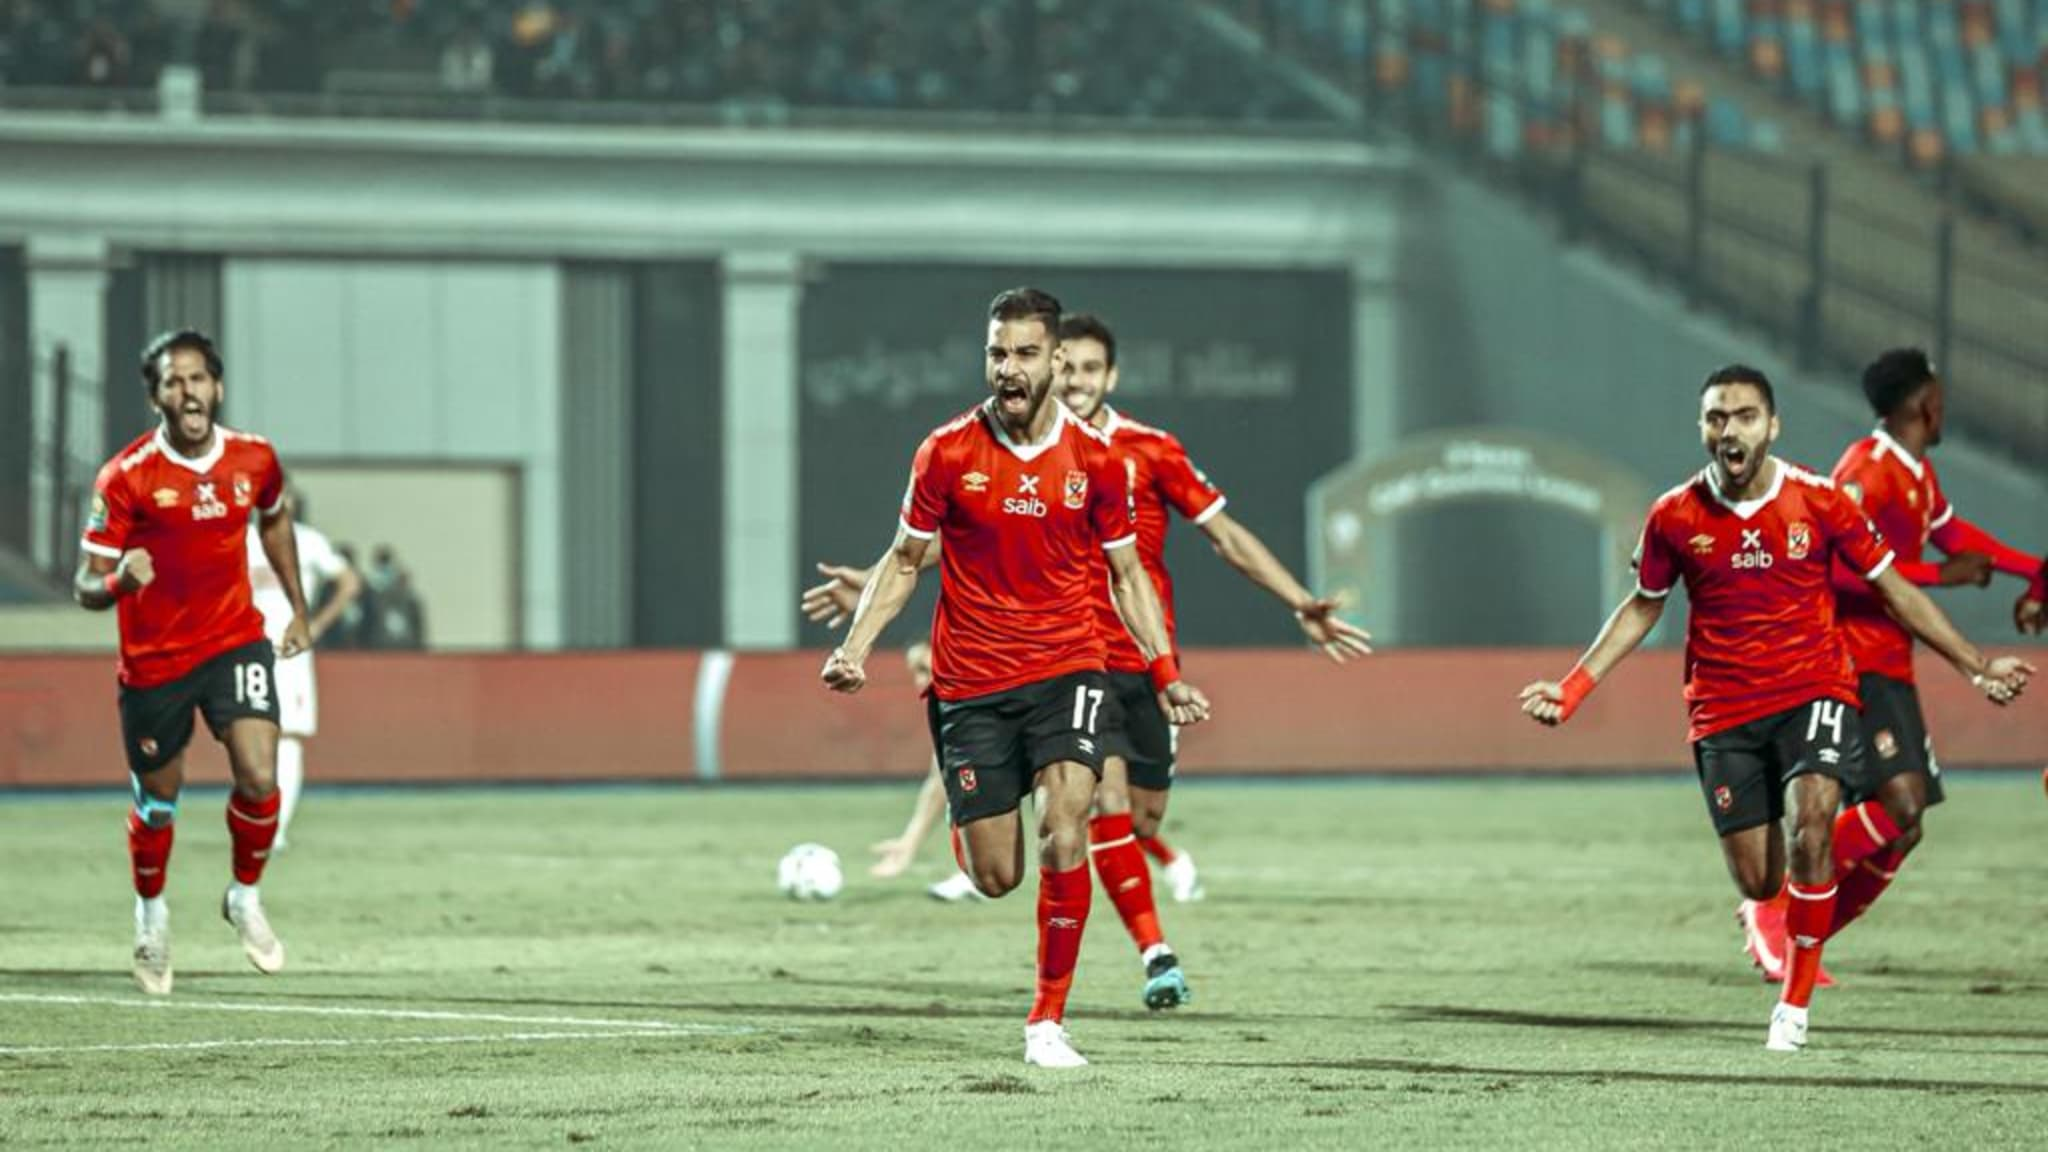 Al Ahly players celebrate their goal against Zamalek